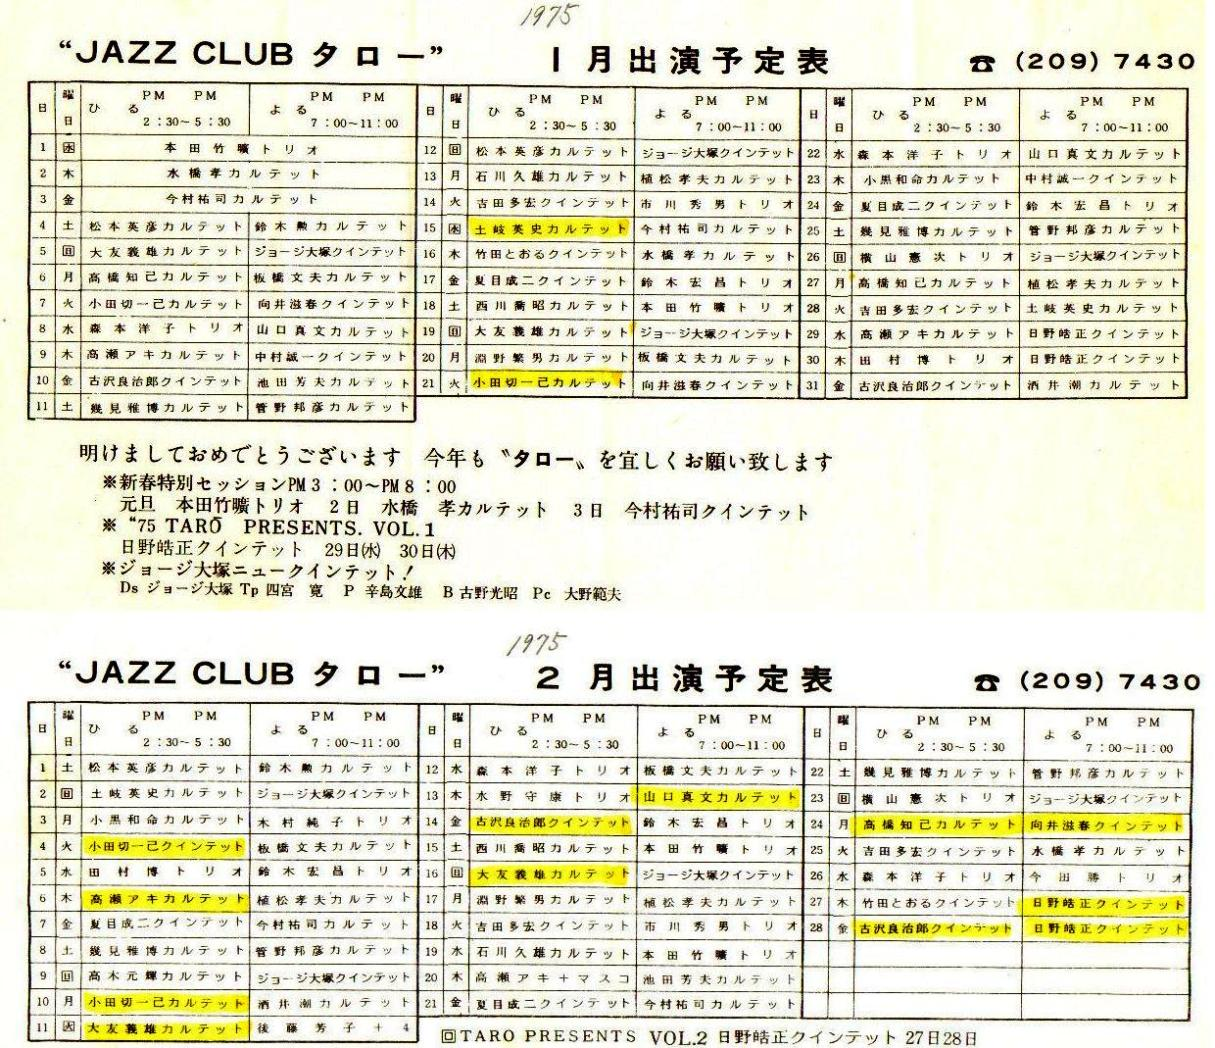 Jazz_club_taro_197501_02_2